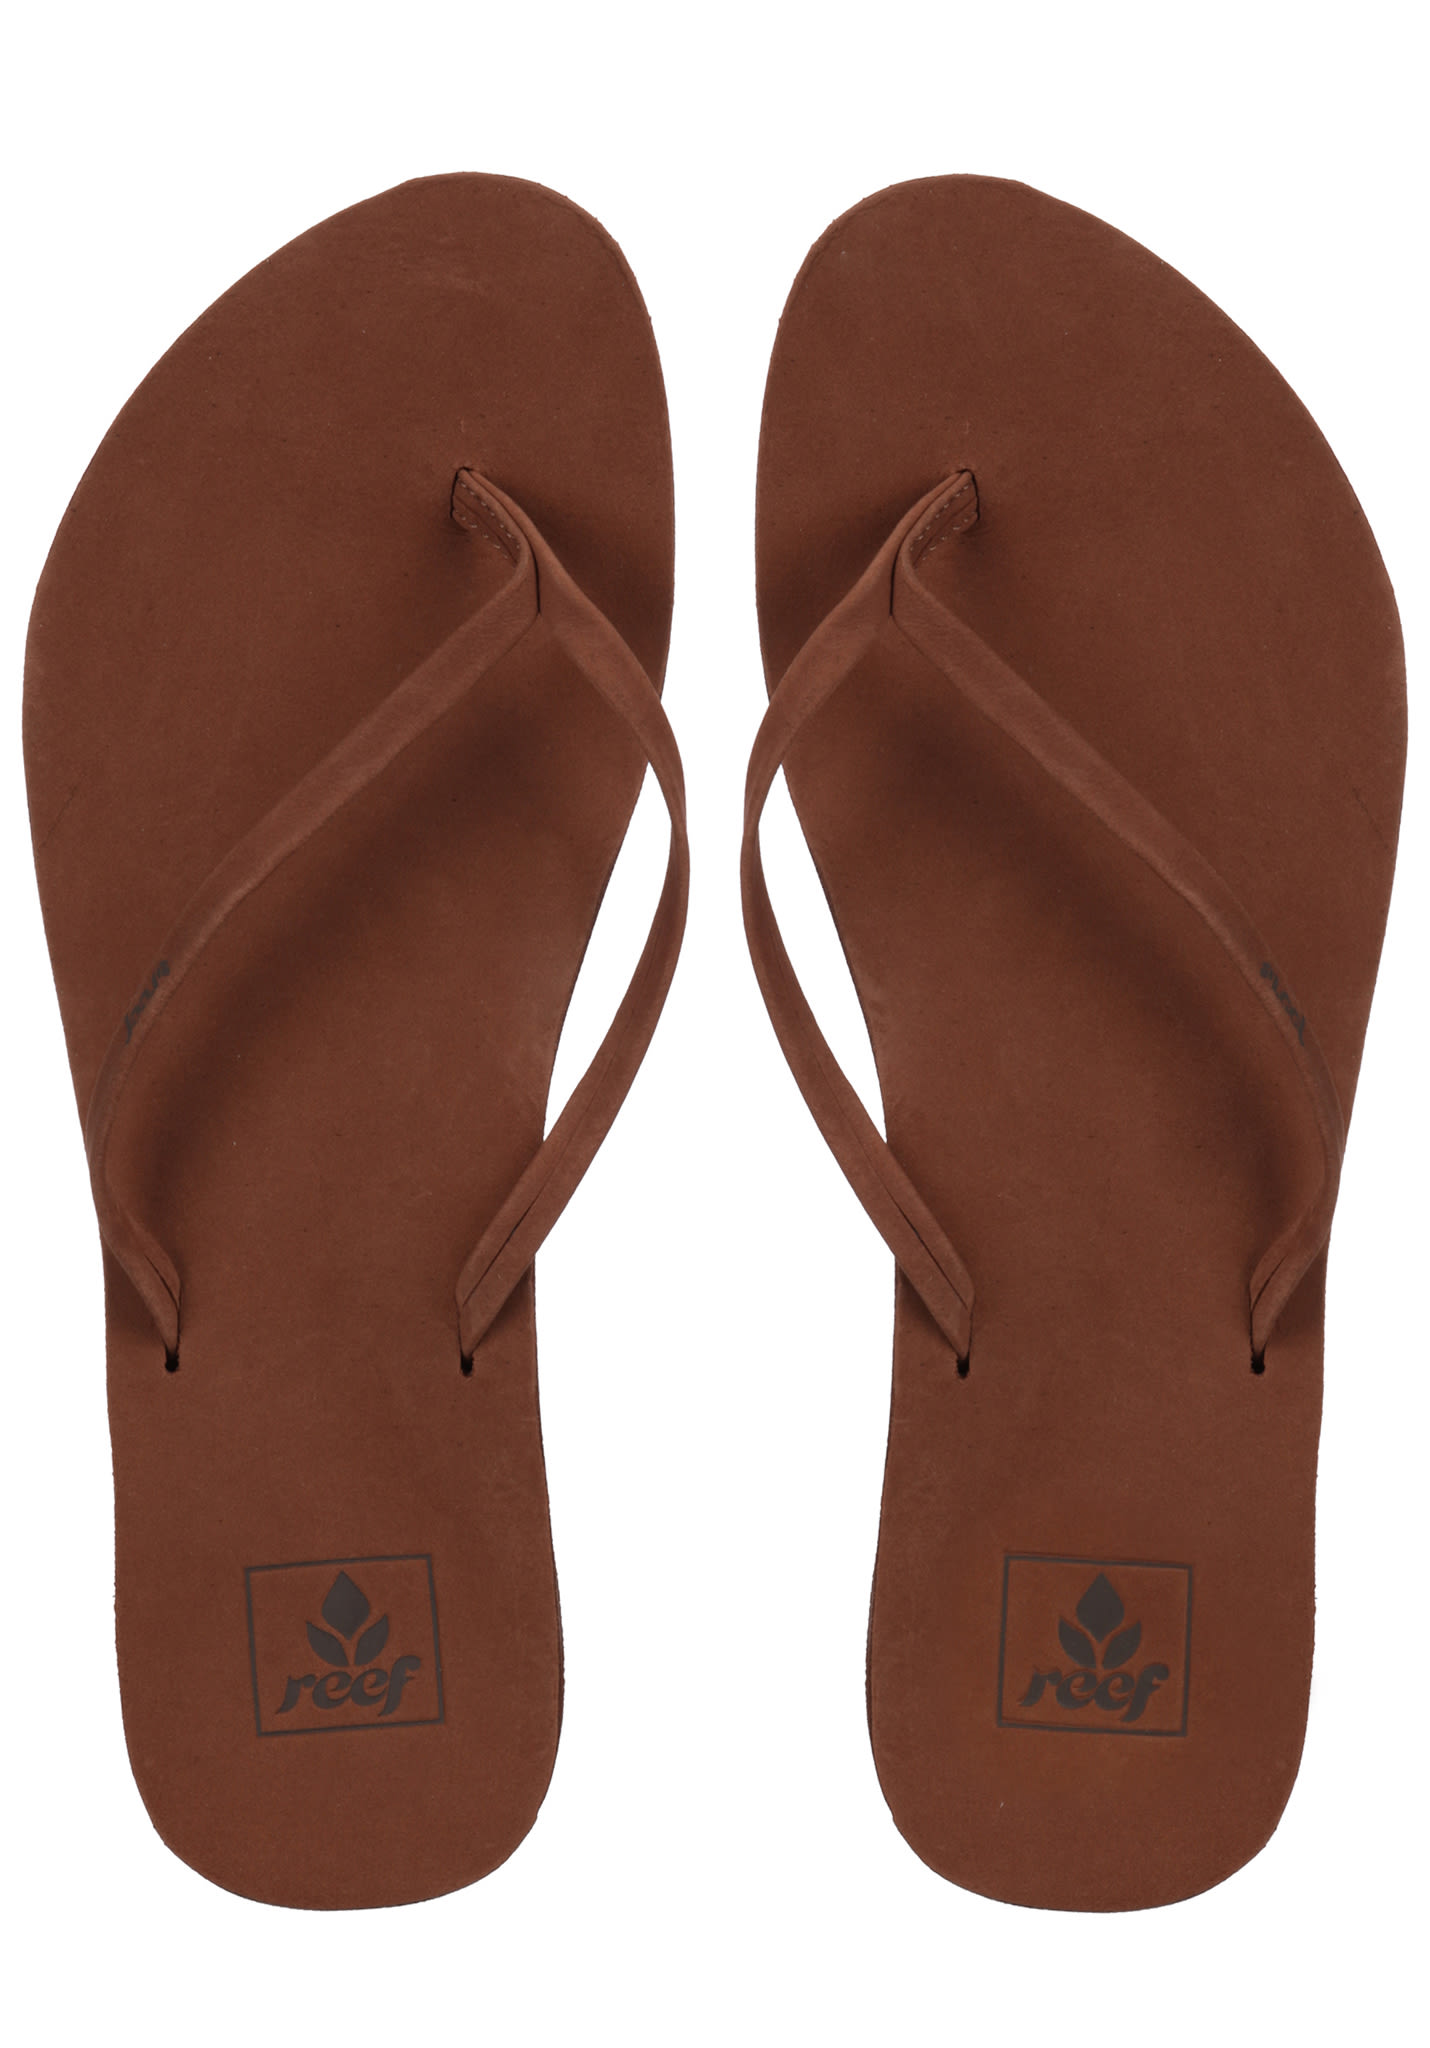 0327b652741c Reef Cushion Bounce Slim LE - Sandals for Women - Brown - Planet Sports